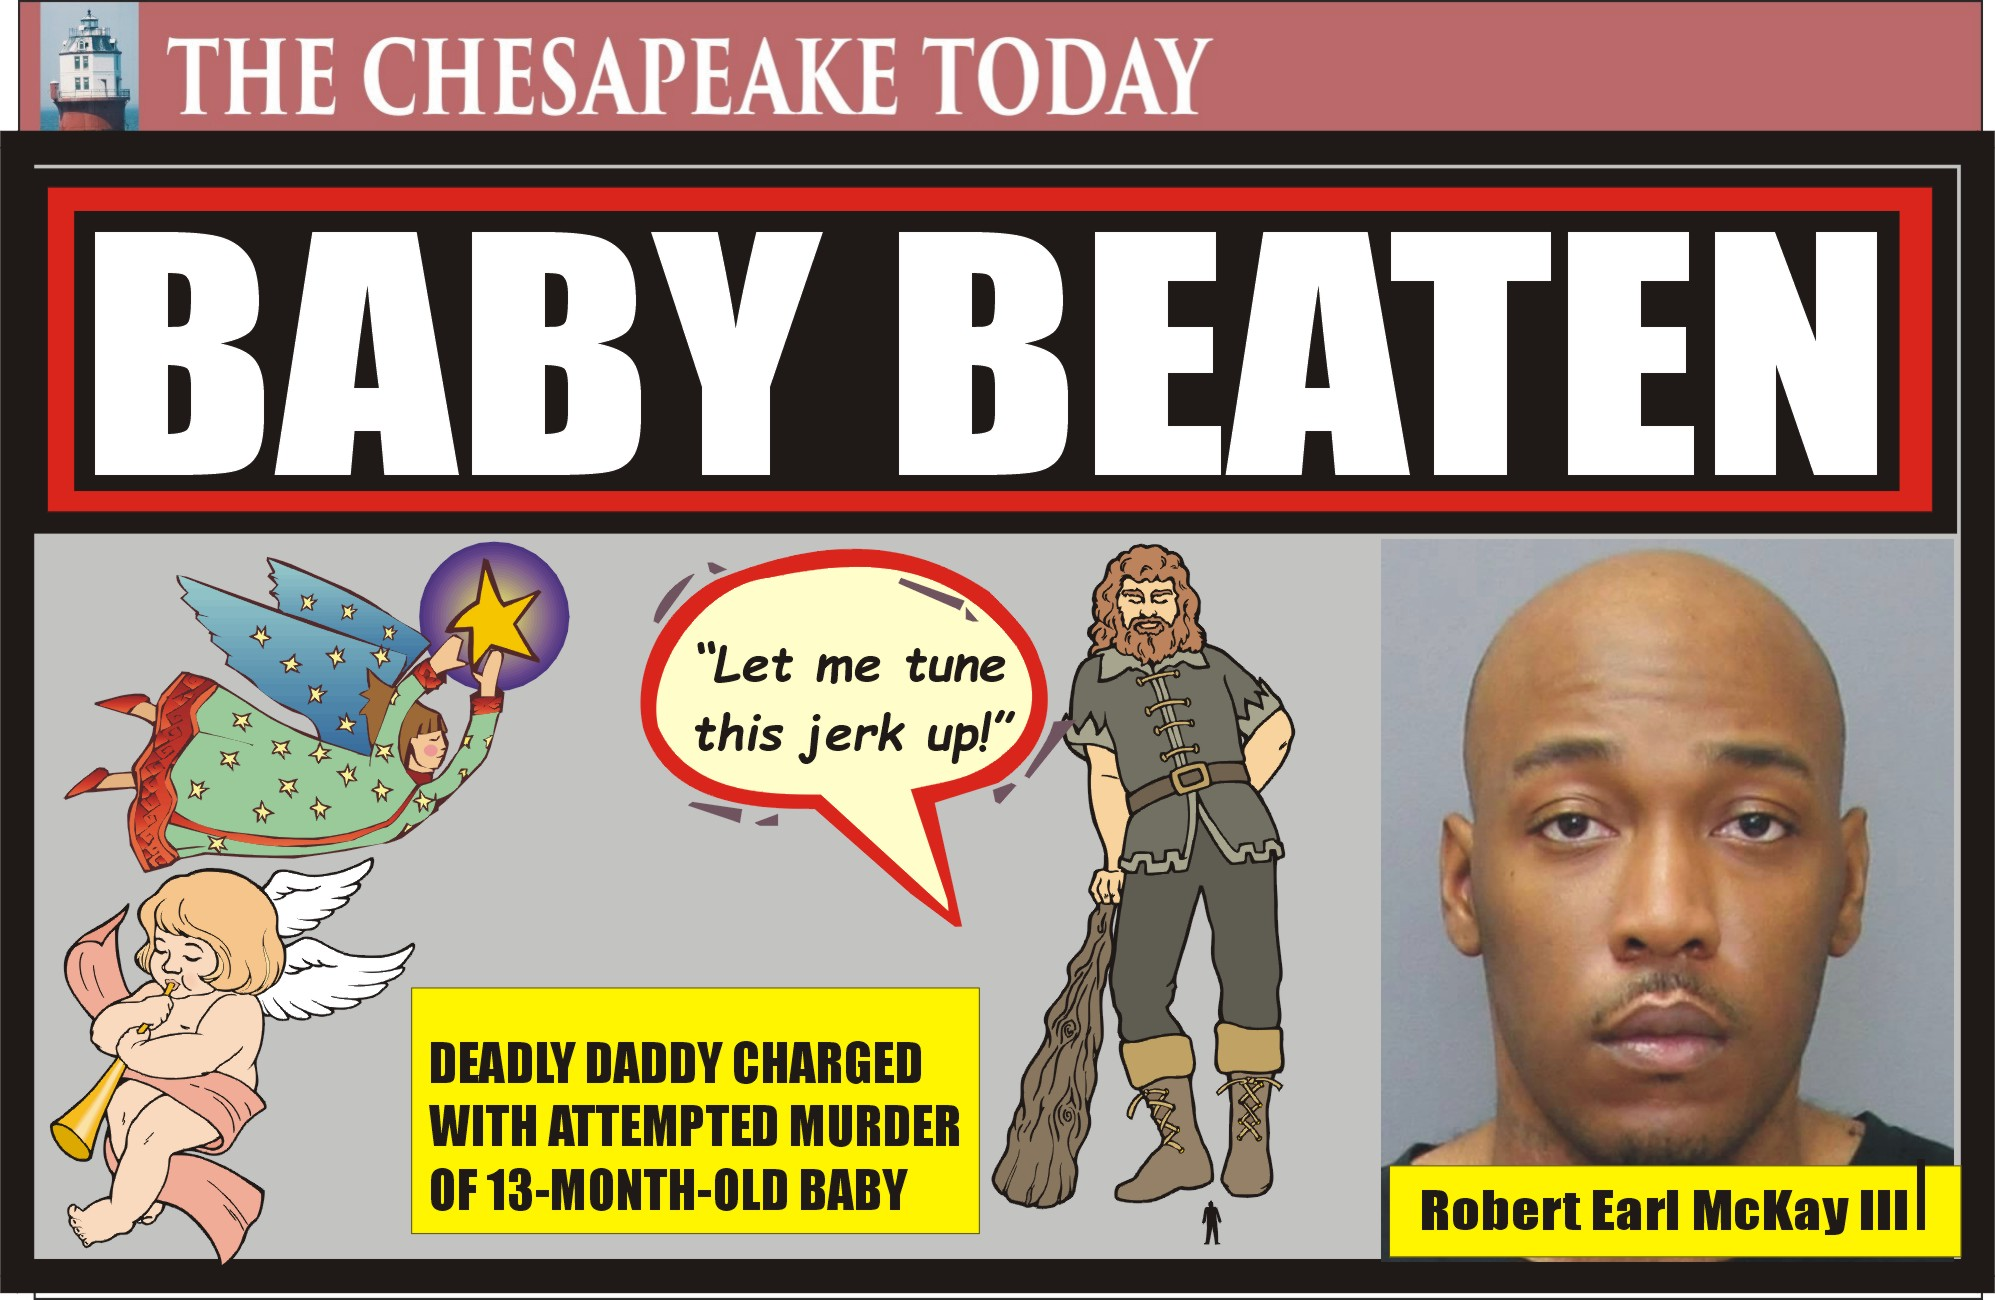 MURDER USA: Convicted Killer Robert Earl McKay III Charged with Attempted Murder of Infant